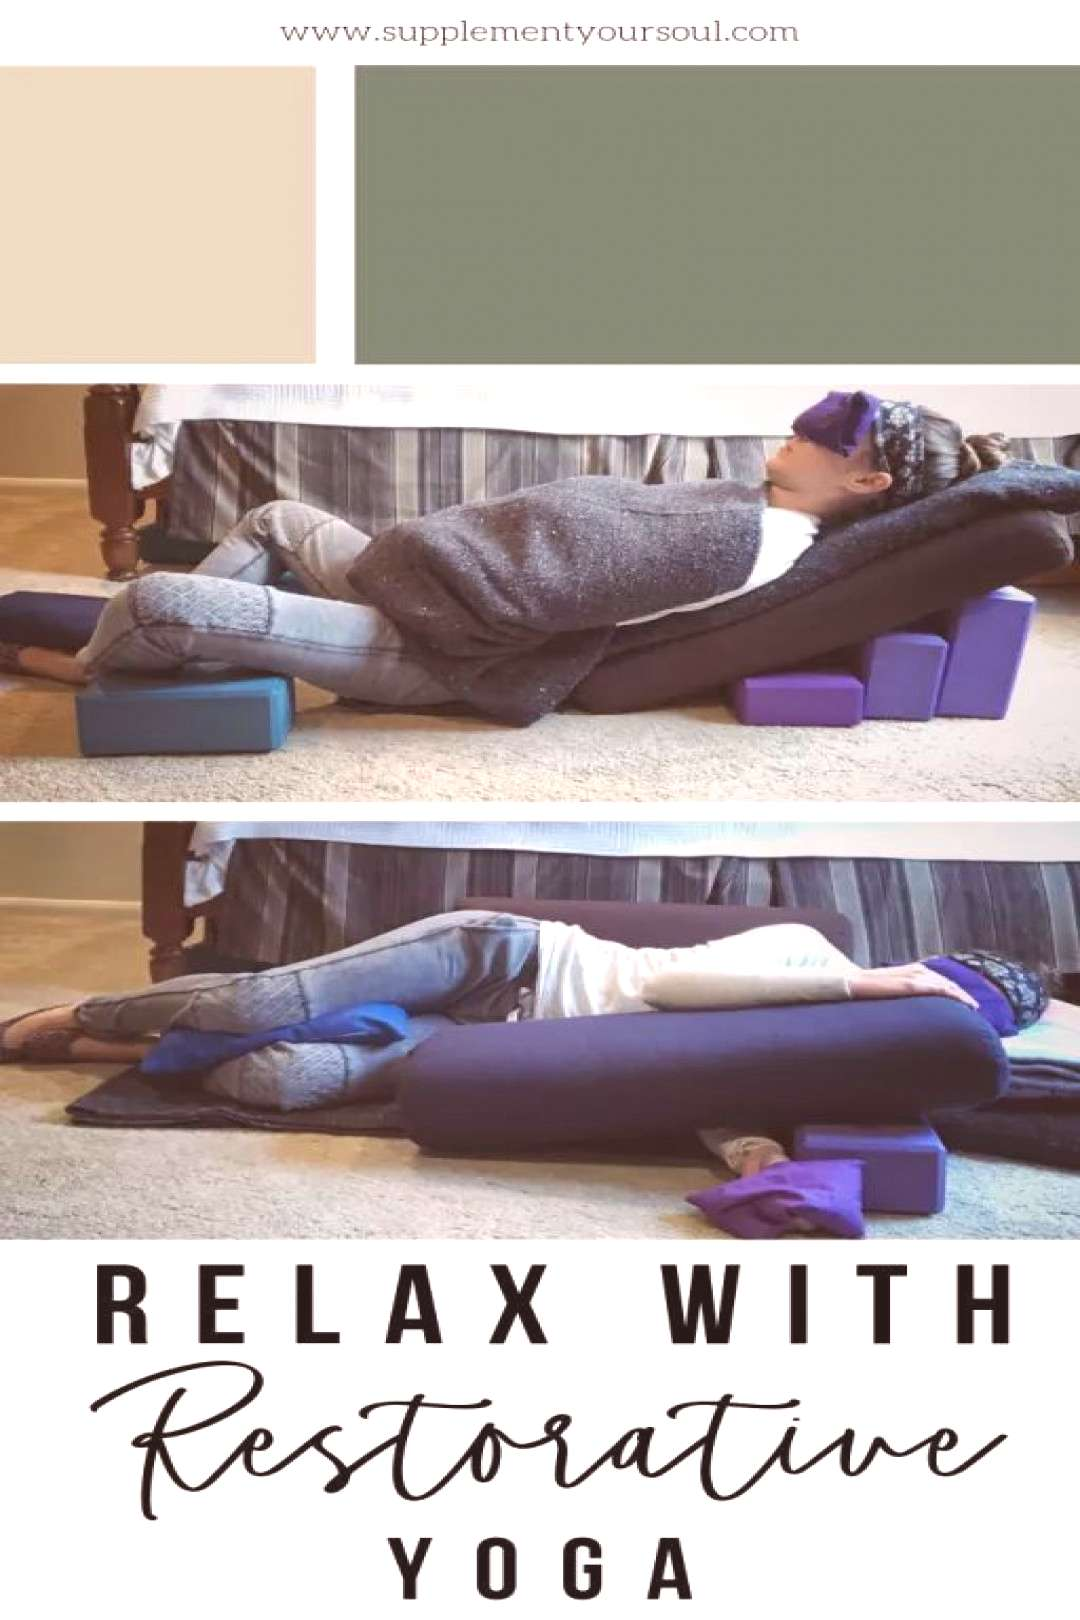 Restorative Yoga is a wonderful way to relax and is a type of yoga almost anyone can do! Read this